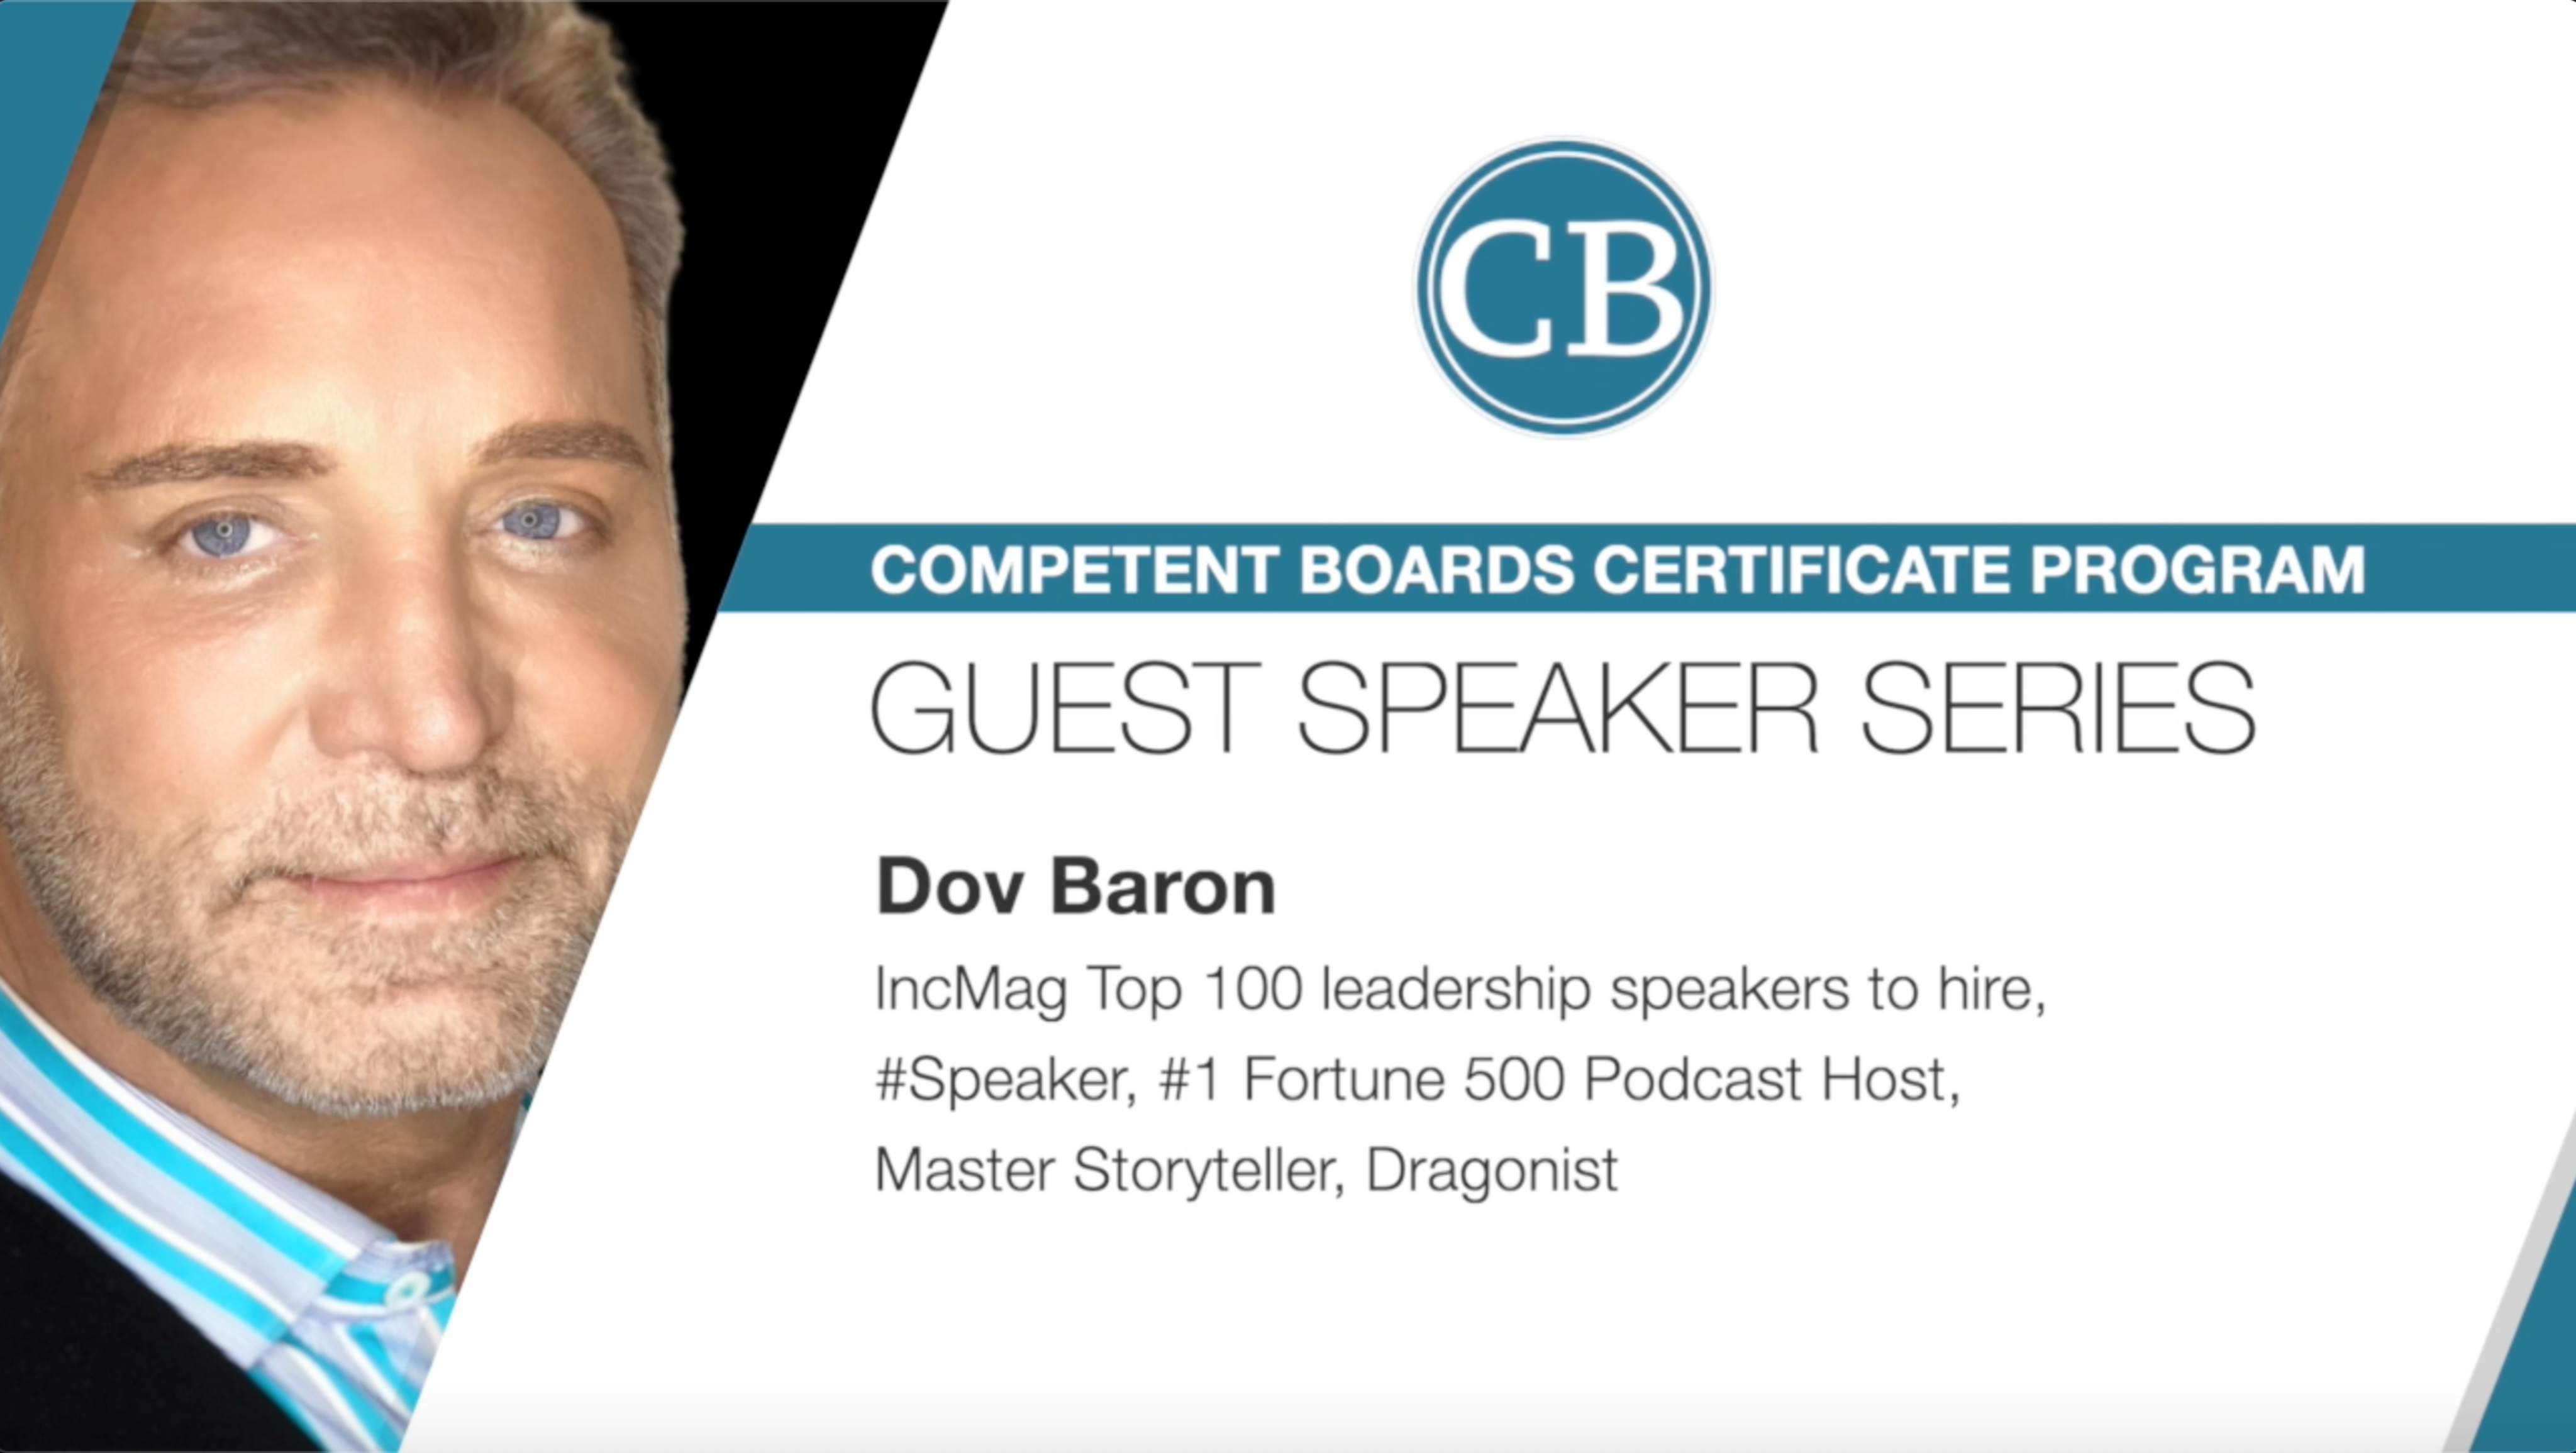 Guest Speaker Series Featuring Dov Baron